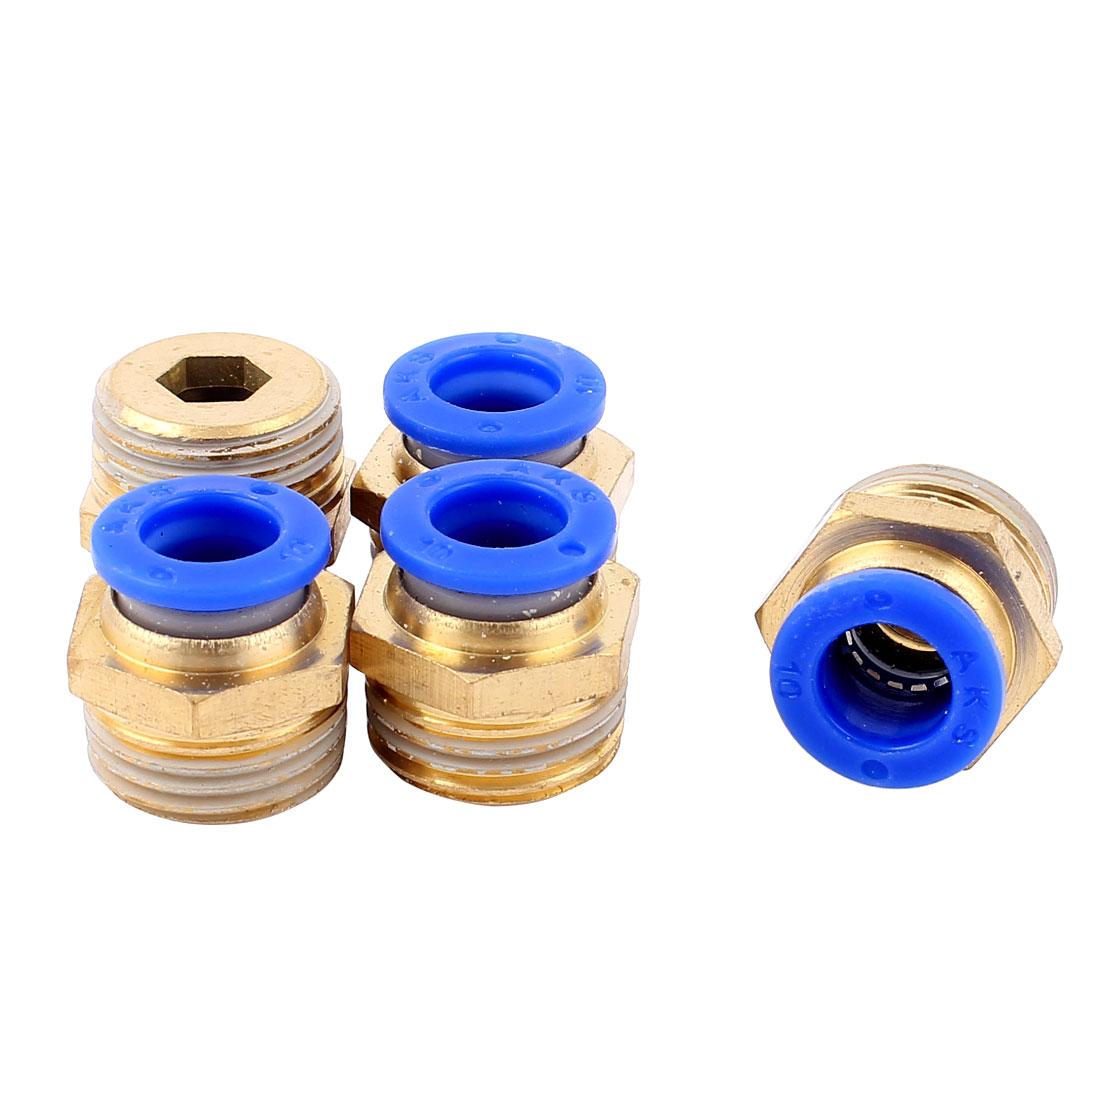 5pcs 1/2BSP Male to 10mm OD Push In Quick Joint Air Pneumatic Fitting Connector